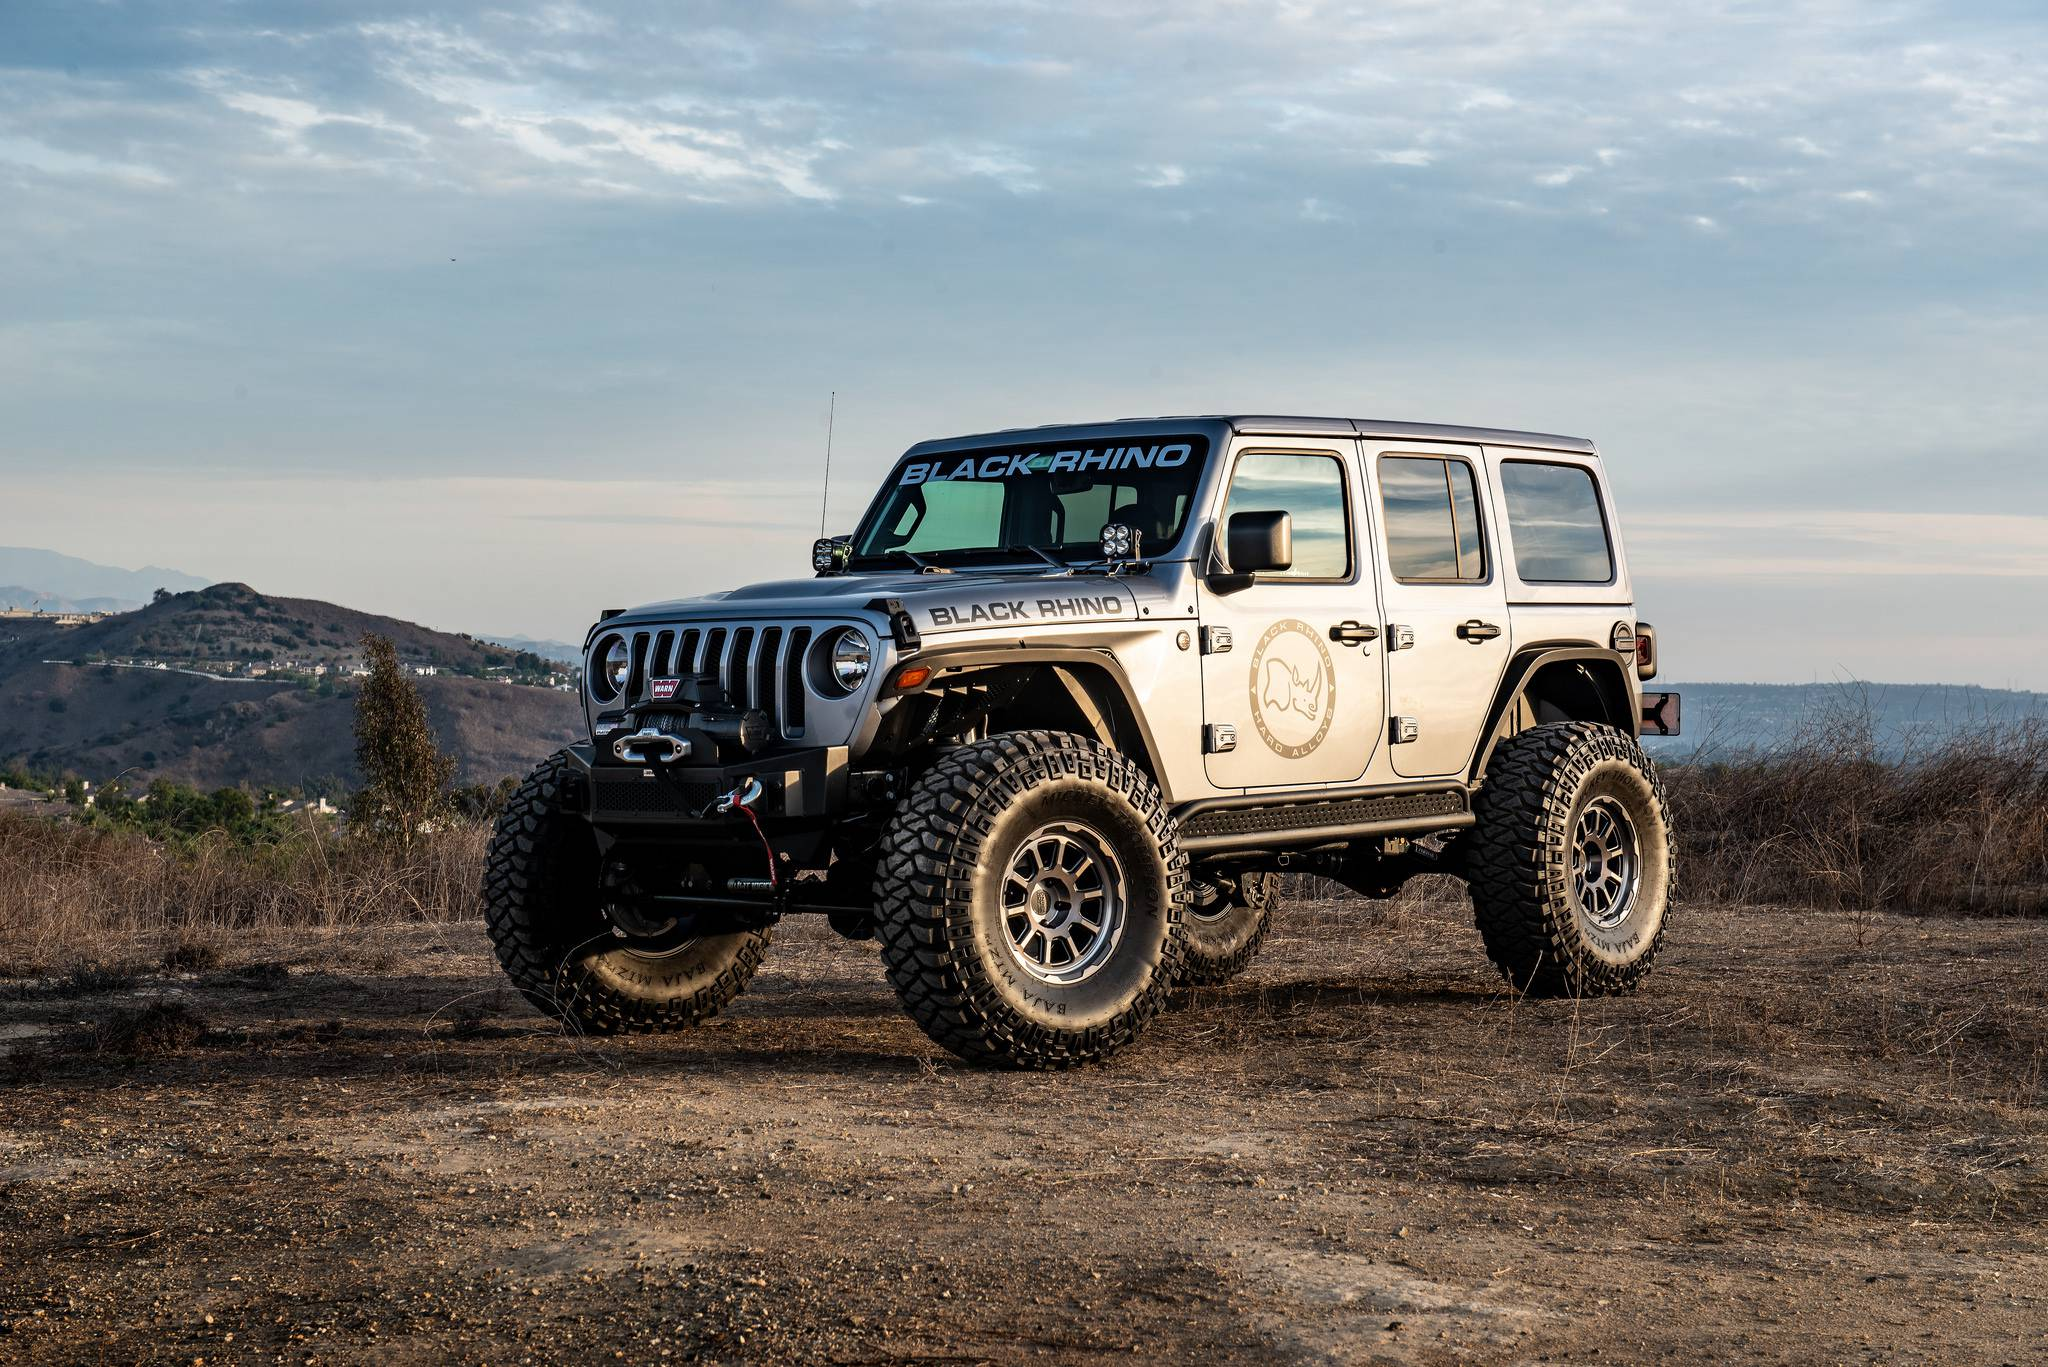 Wrangler Rubicon JLU HD wallpapers